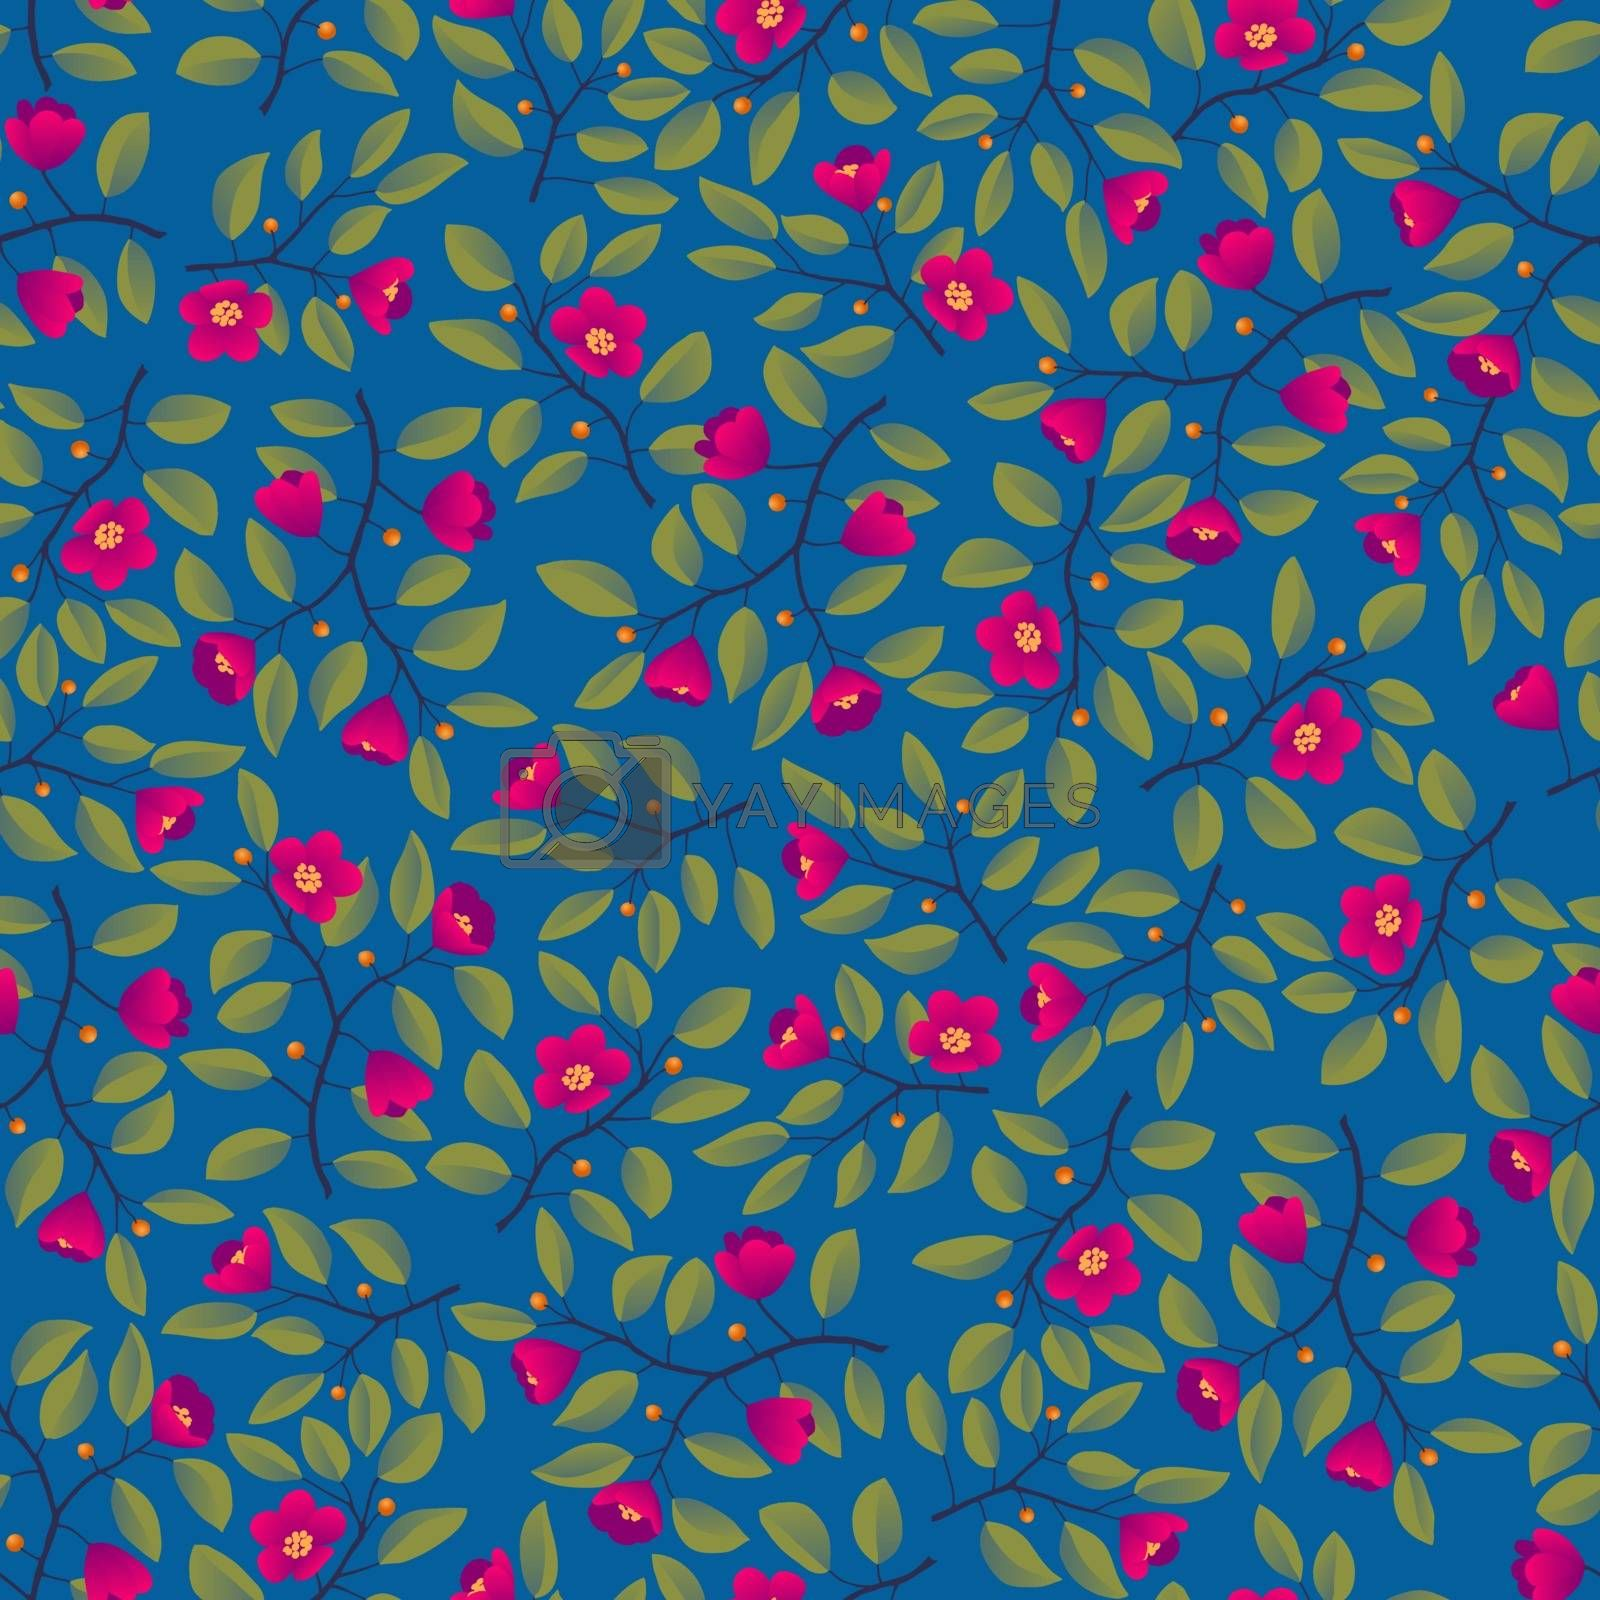 Floral background - seamless pattern, branches with leaves and bright magenta flowers on blue. Vector illustration, design for wallpaper, textile, fabric, wrapping.